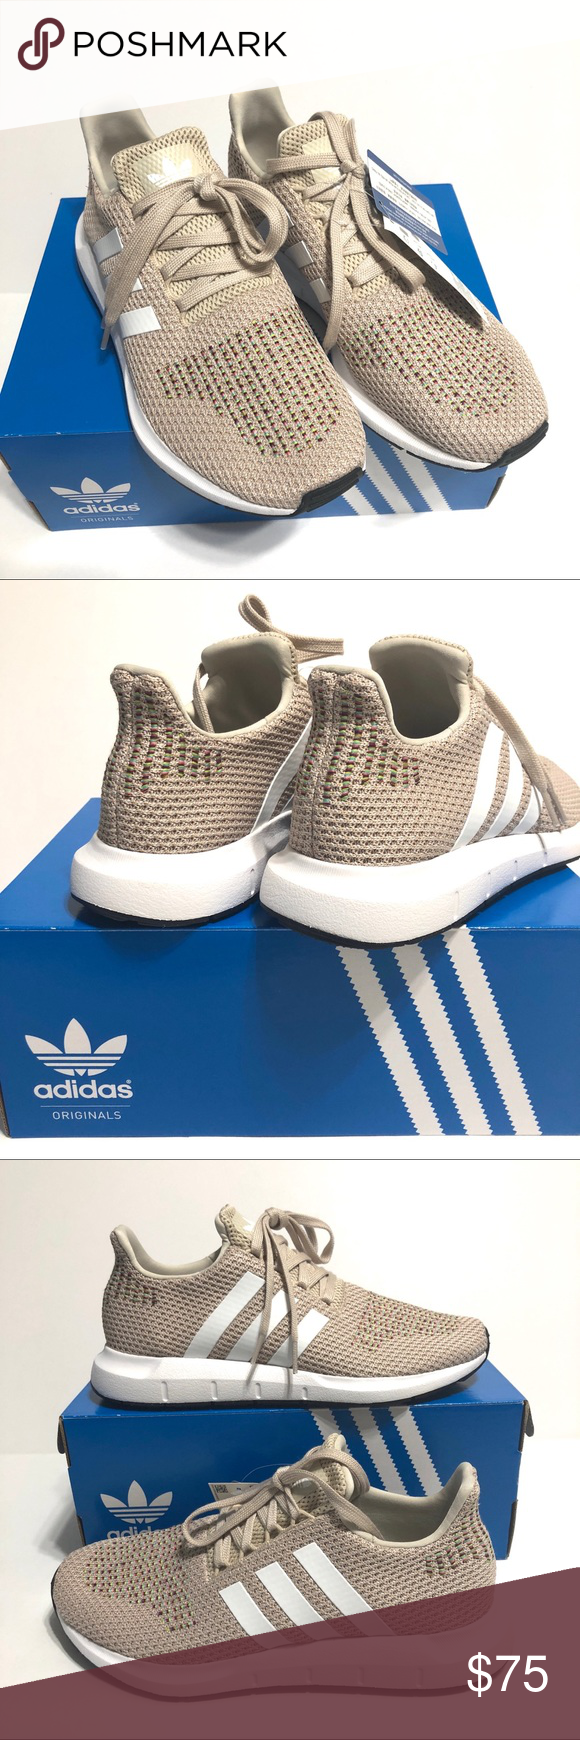 381166fe6bb Adidas- Swift Run Women s Running Shoes You can t beat this price! I bought  it online but it s a bit too big for me so I bought a different pair